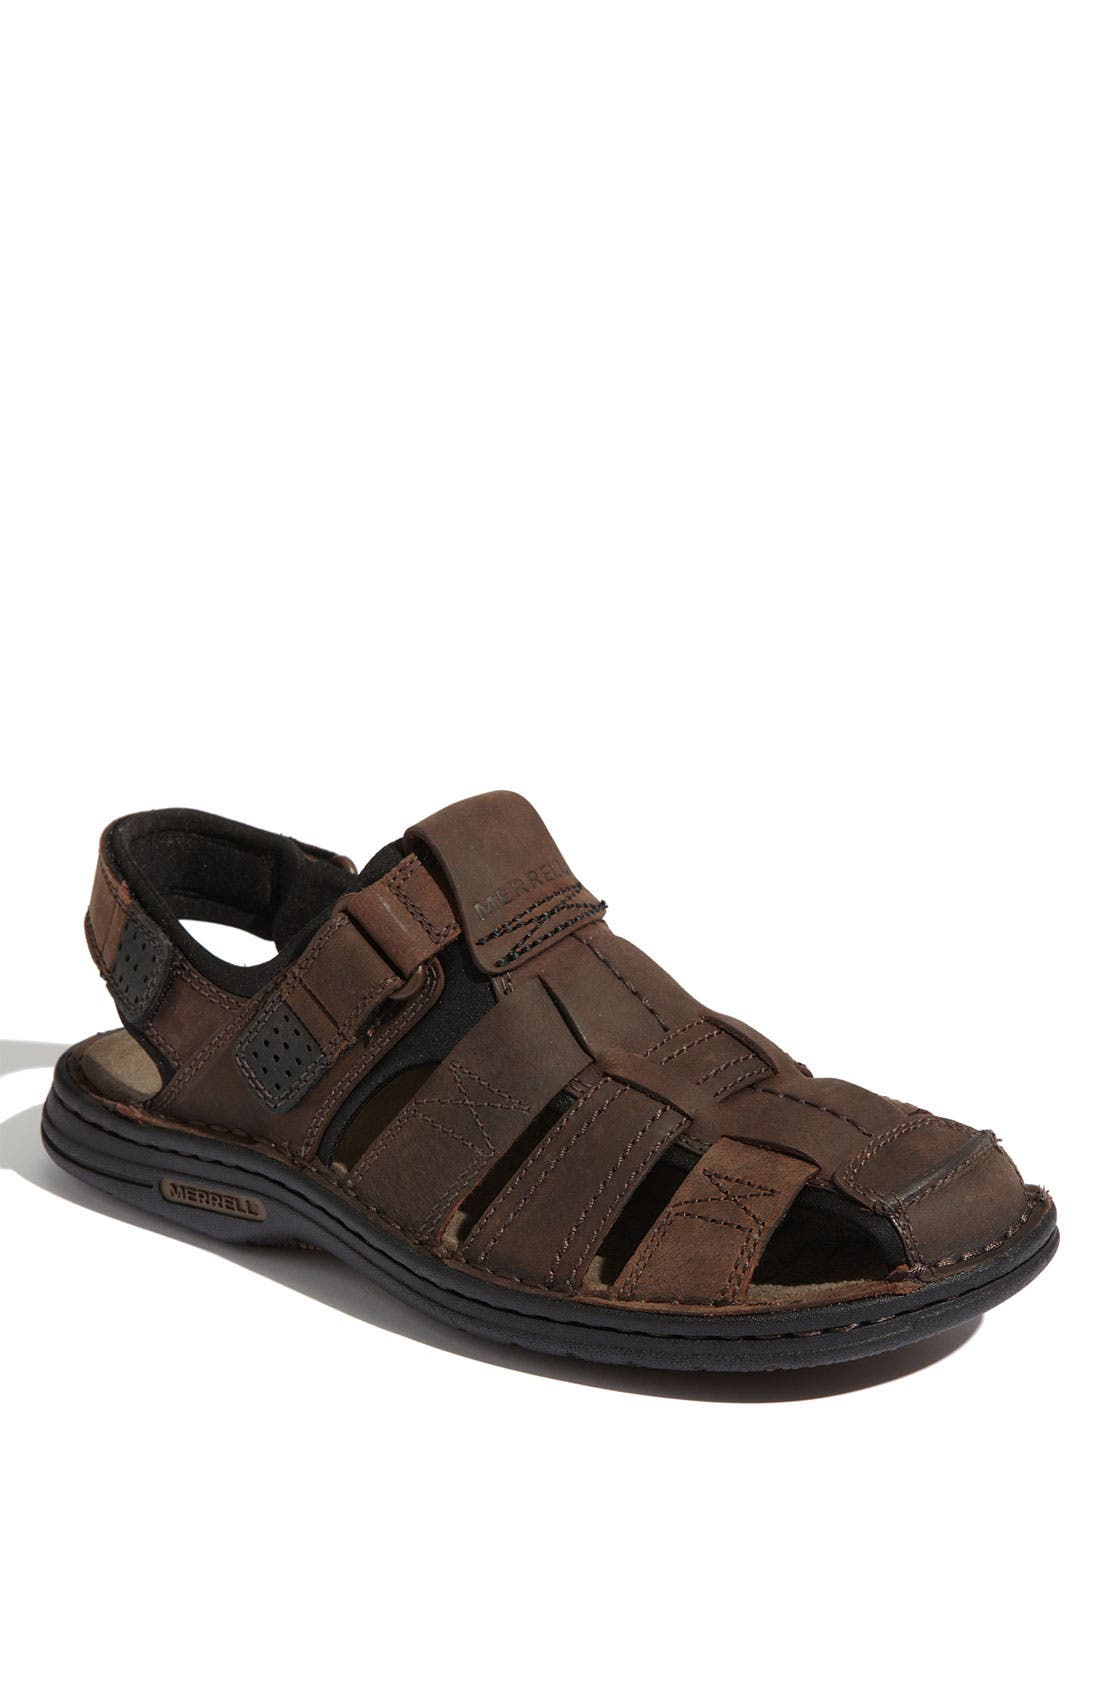 Main Image - Merrell 'World Midway' Sandal (Online Only)